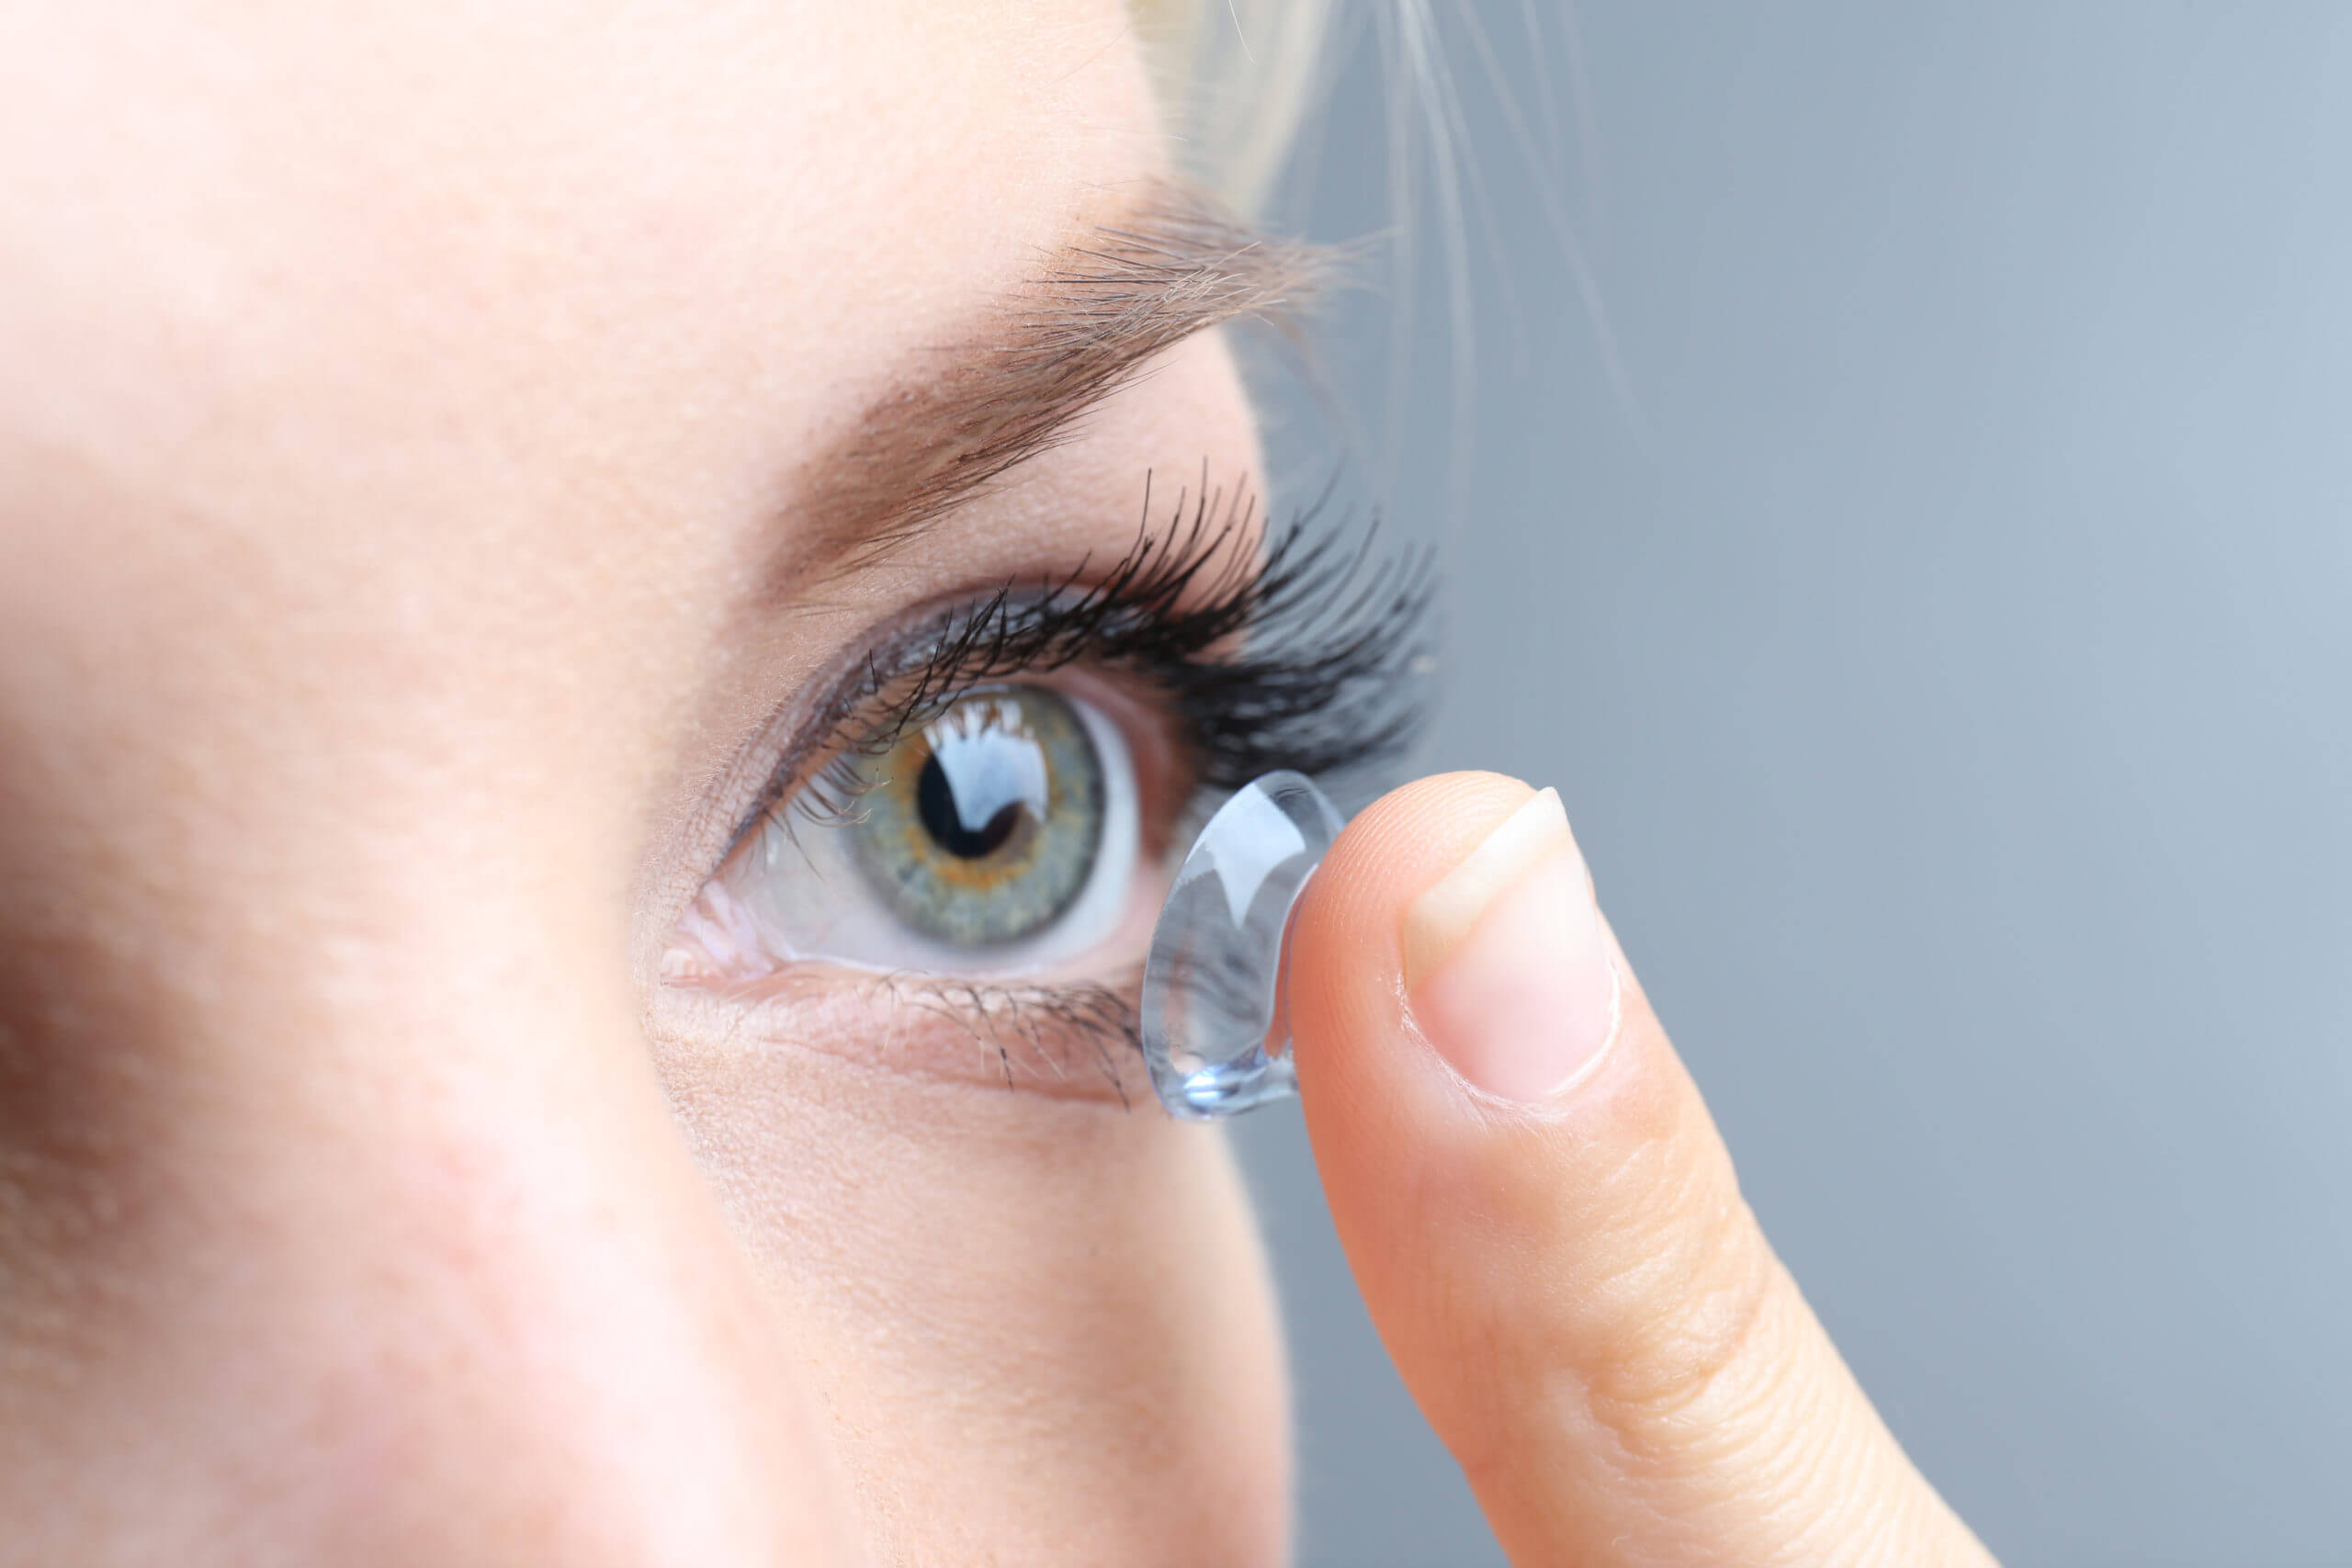 brunette woman putting in contact lenses